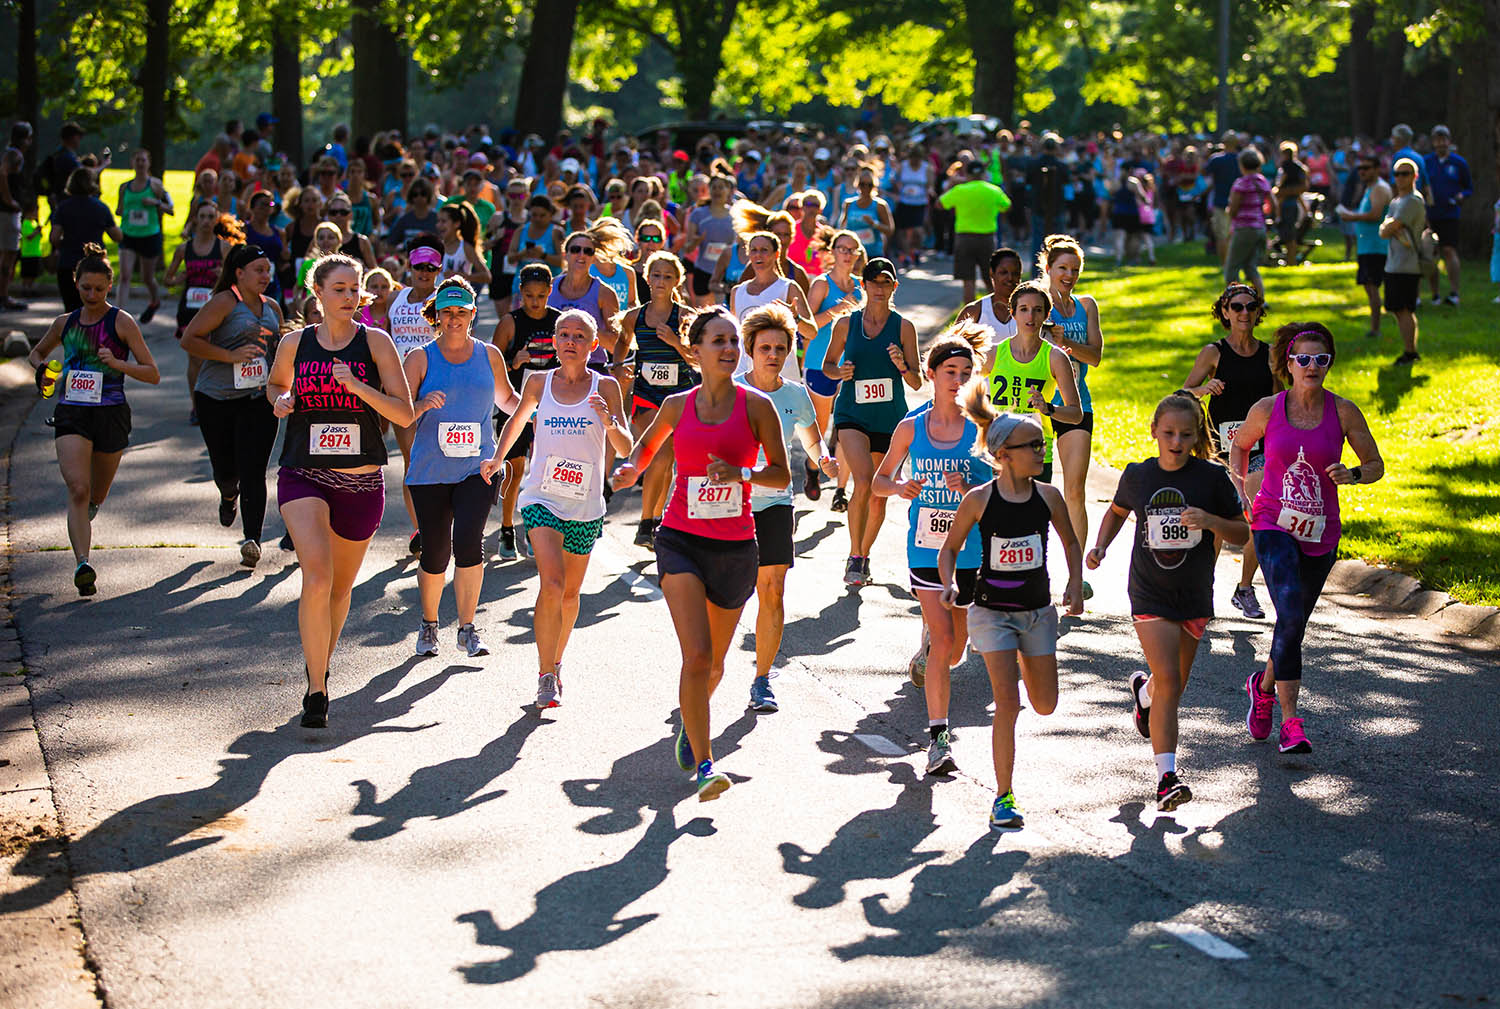 Women of all ages cascade down the road as they start the 2 mile run in the 40th annual Women's Distance Festival in Washington Park, Saturday, July 13, 2019, in Springfield, Ill. In July of 1980 the Road Runners Club of America launched the Women's Distance Festival in protest that women were not included in the distance running events for the 1980 Olympics in Moscow. The Women's Distance Festival races are held across the country and celebrate the history of women's rights to participate in running events at any distance and at any age. [Justin L. Fowler/The State Journal-Register]